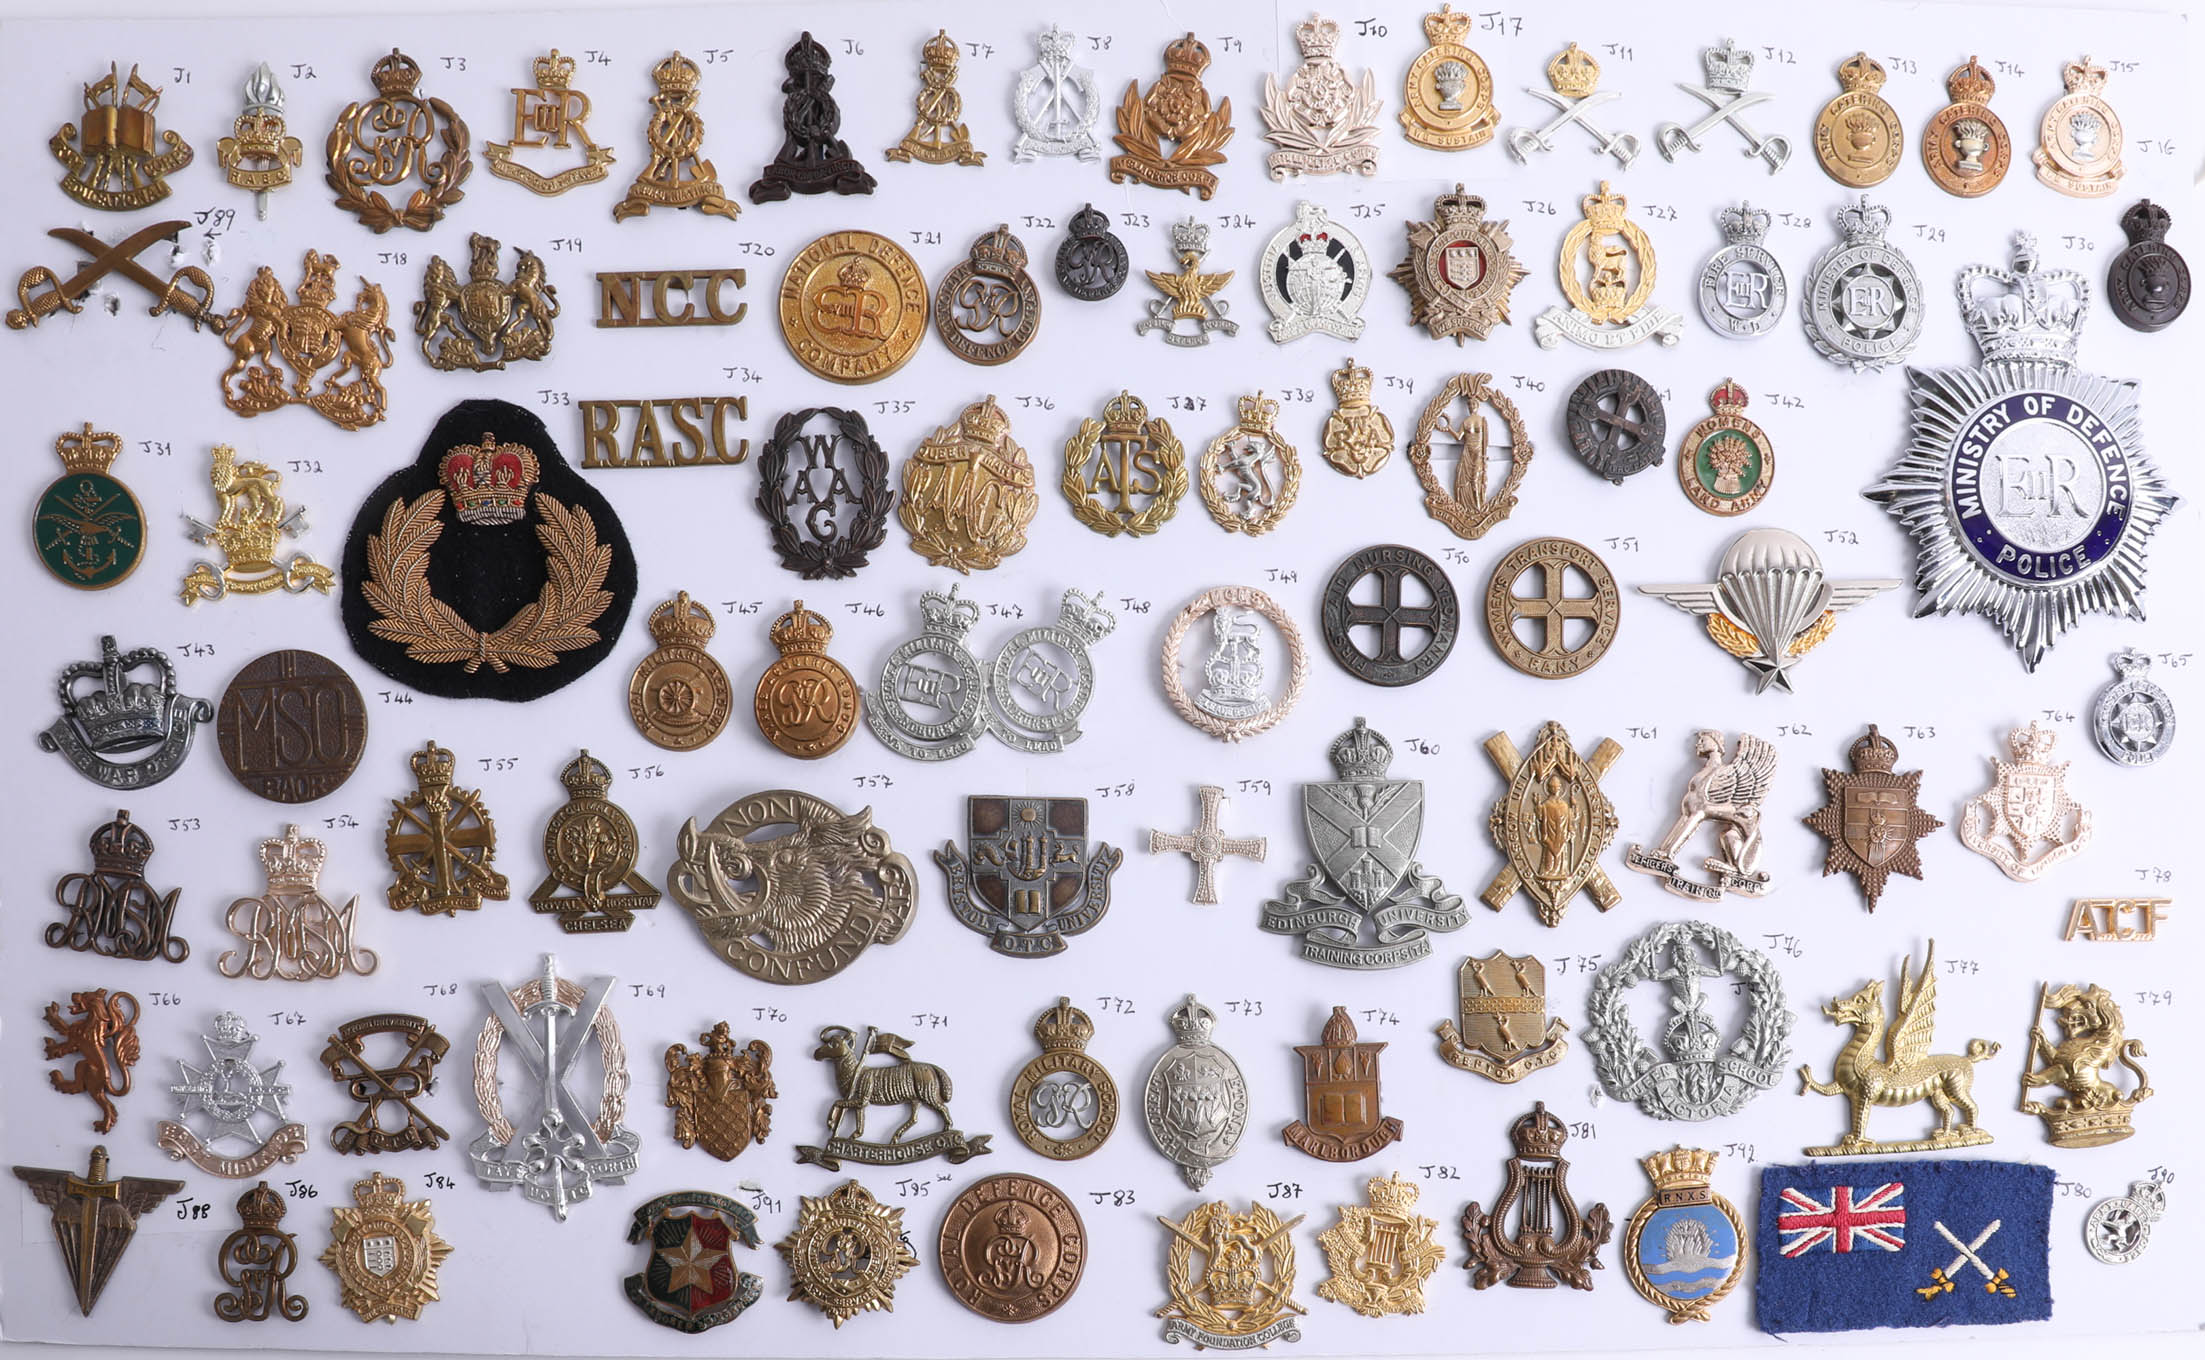 Lot 010 - A collection of approx. 92 military cap badges including those of the Intelligence Corps, Pioneer